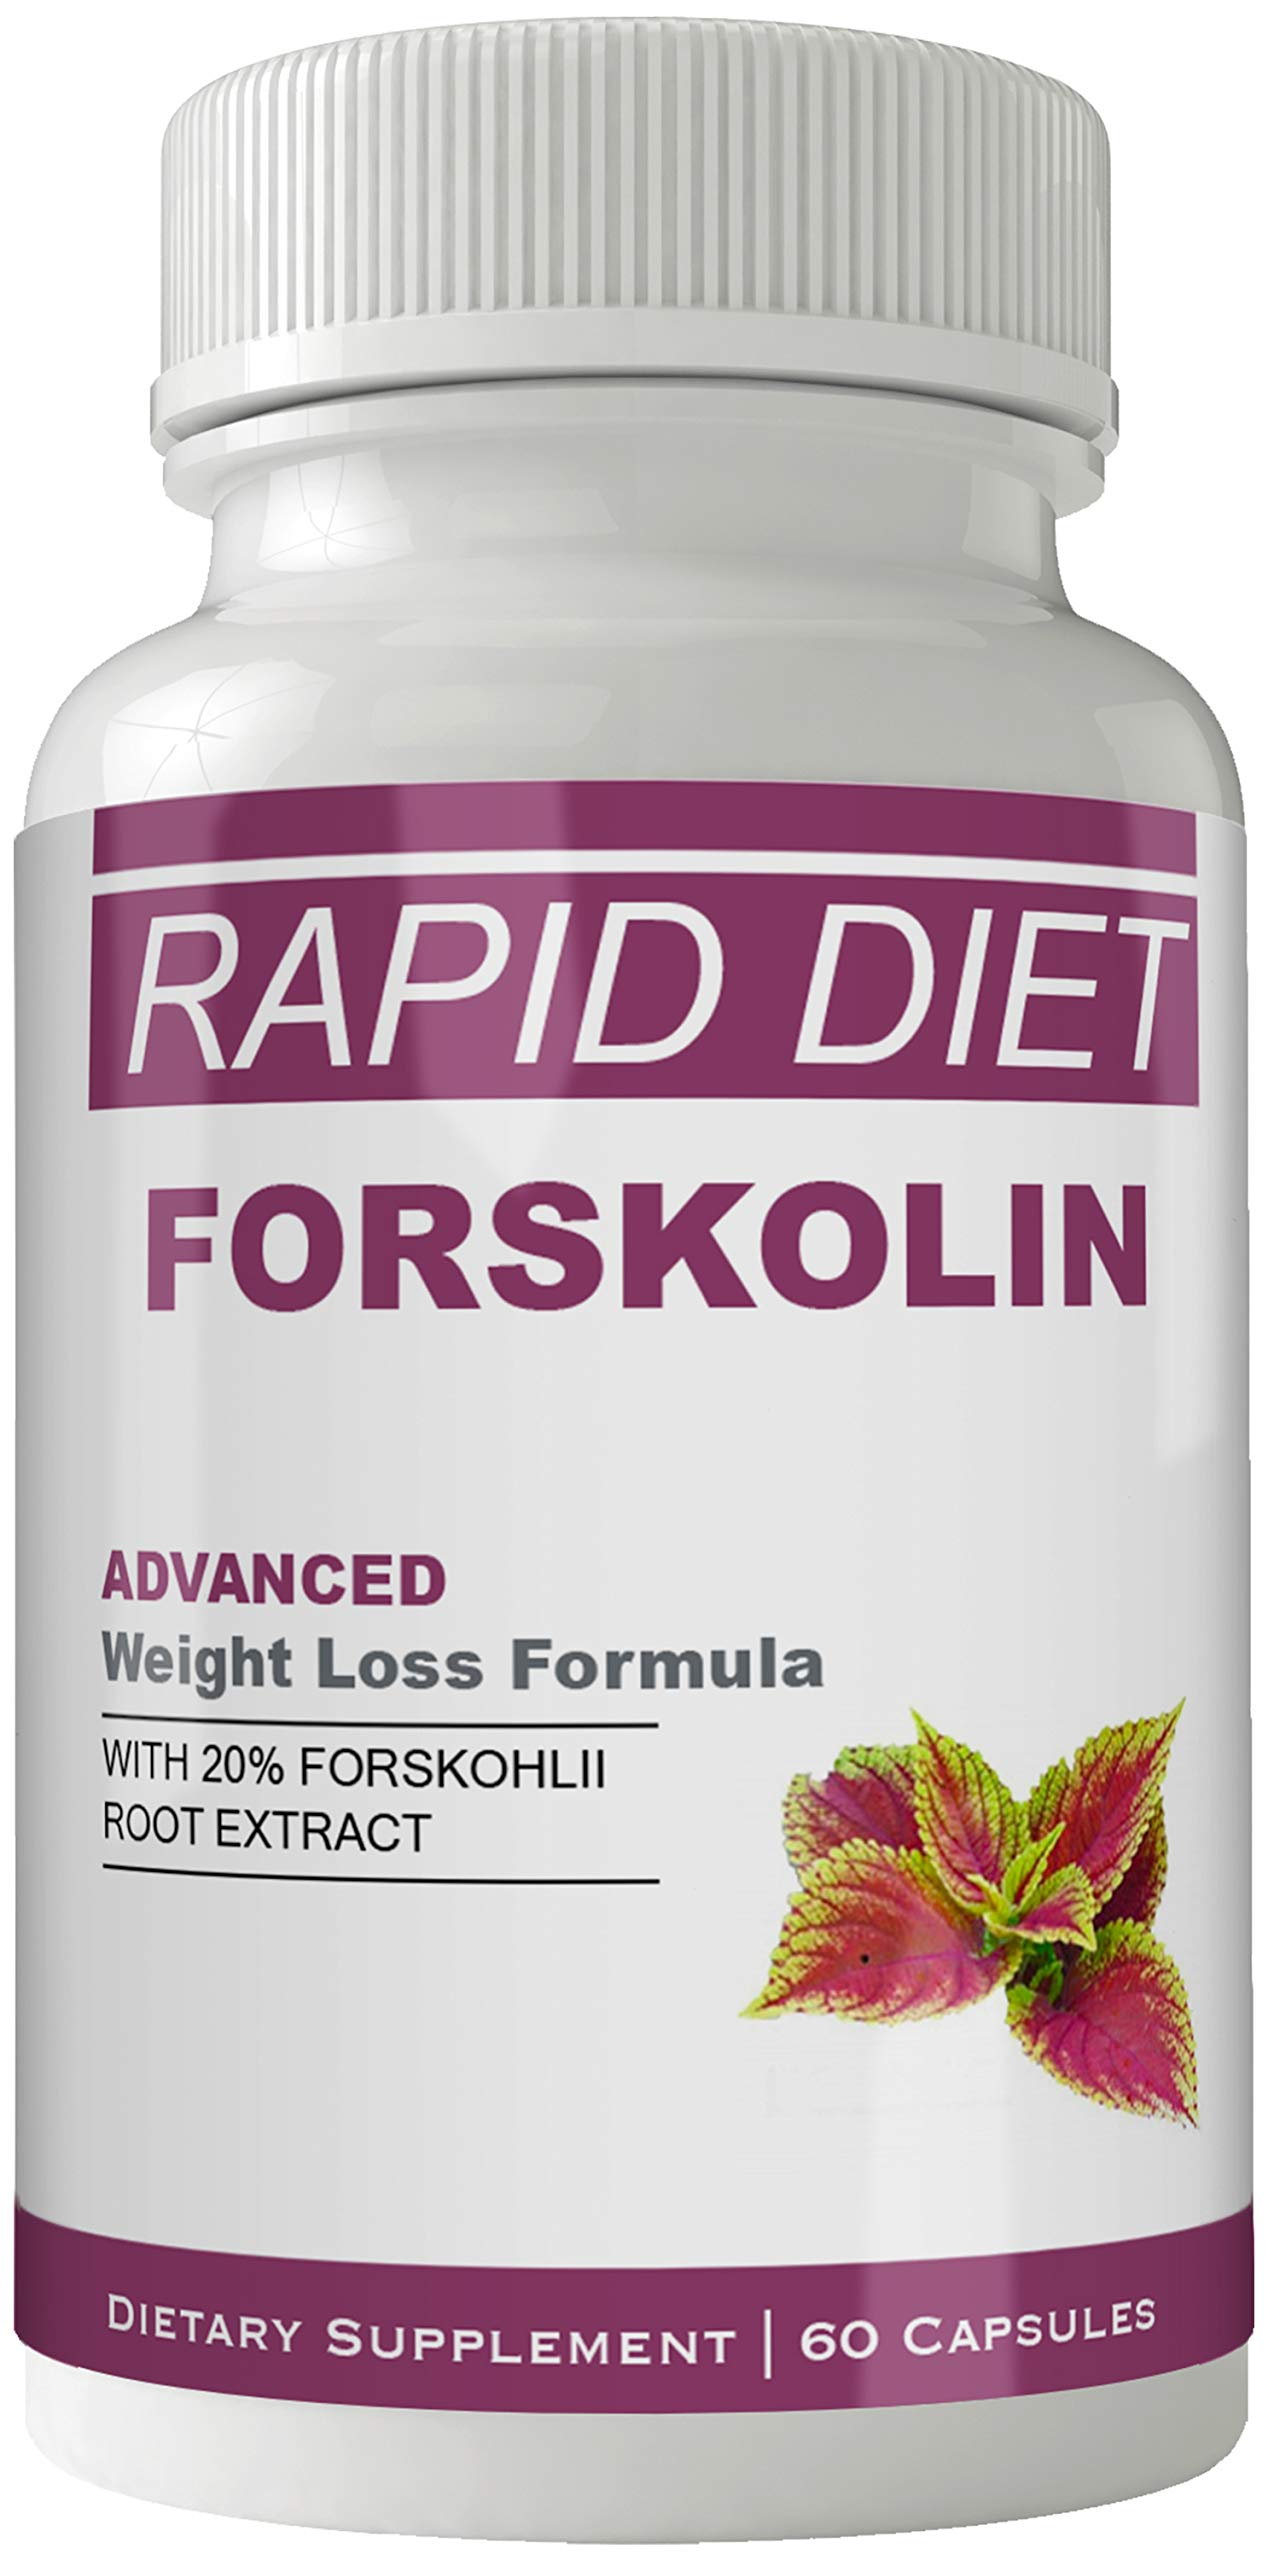 Rapid Diet Supplement for Weight Loss Capsules with Natural High Quality Pure Forskolin Extract Diet Pills by nutra4health LLC